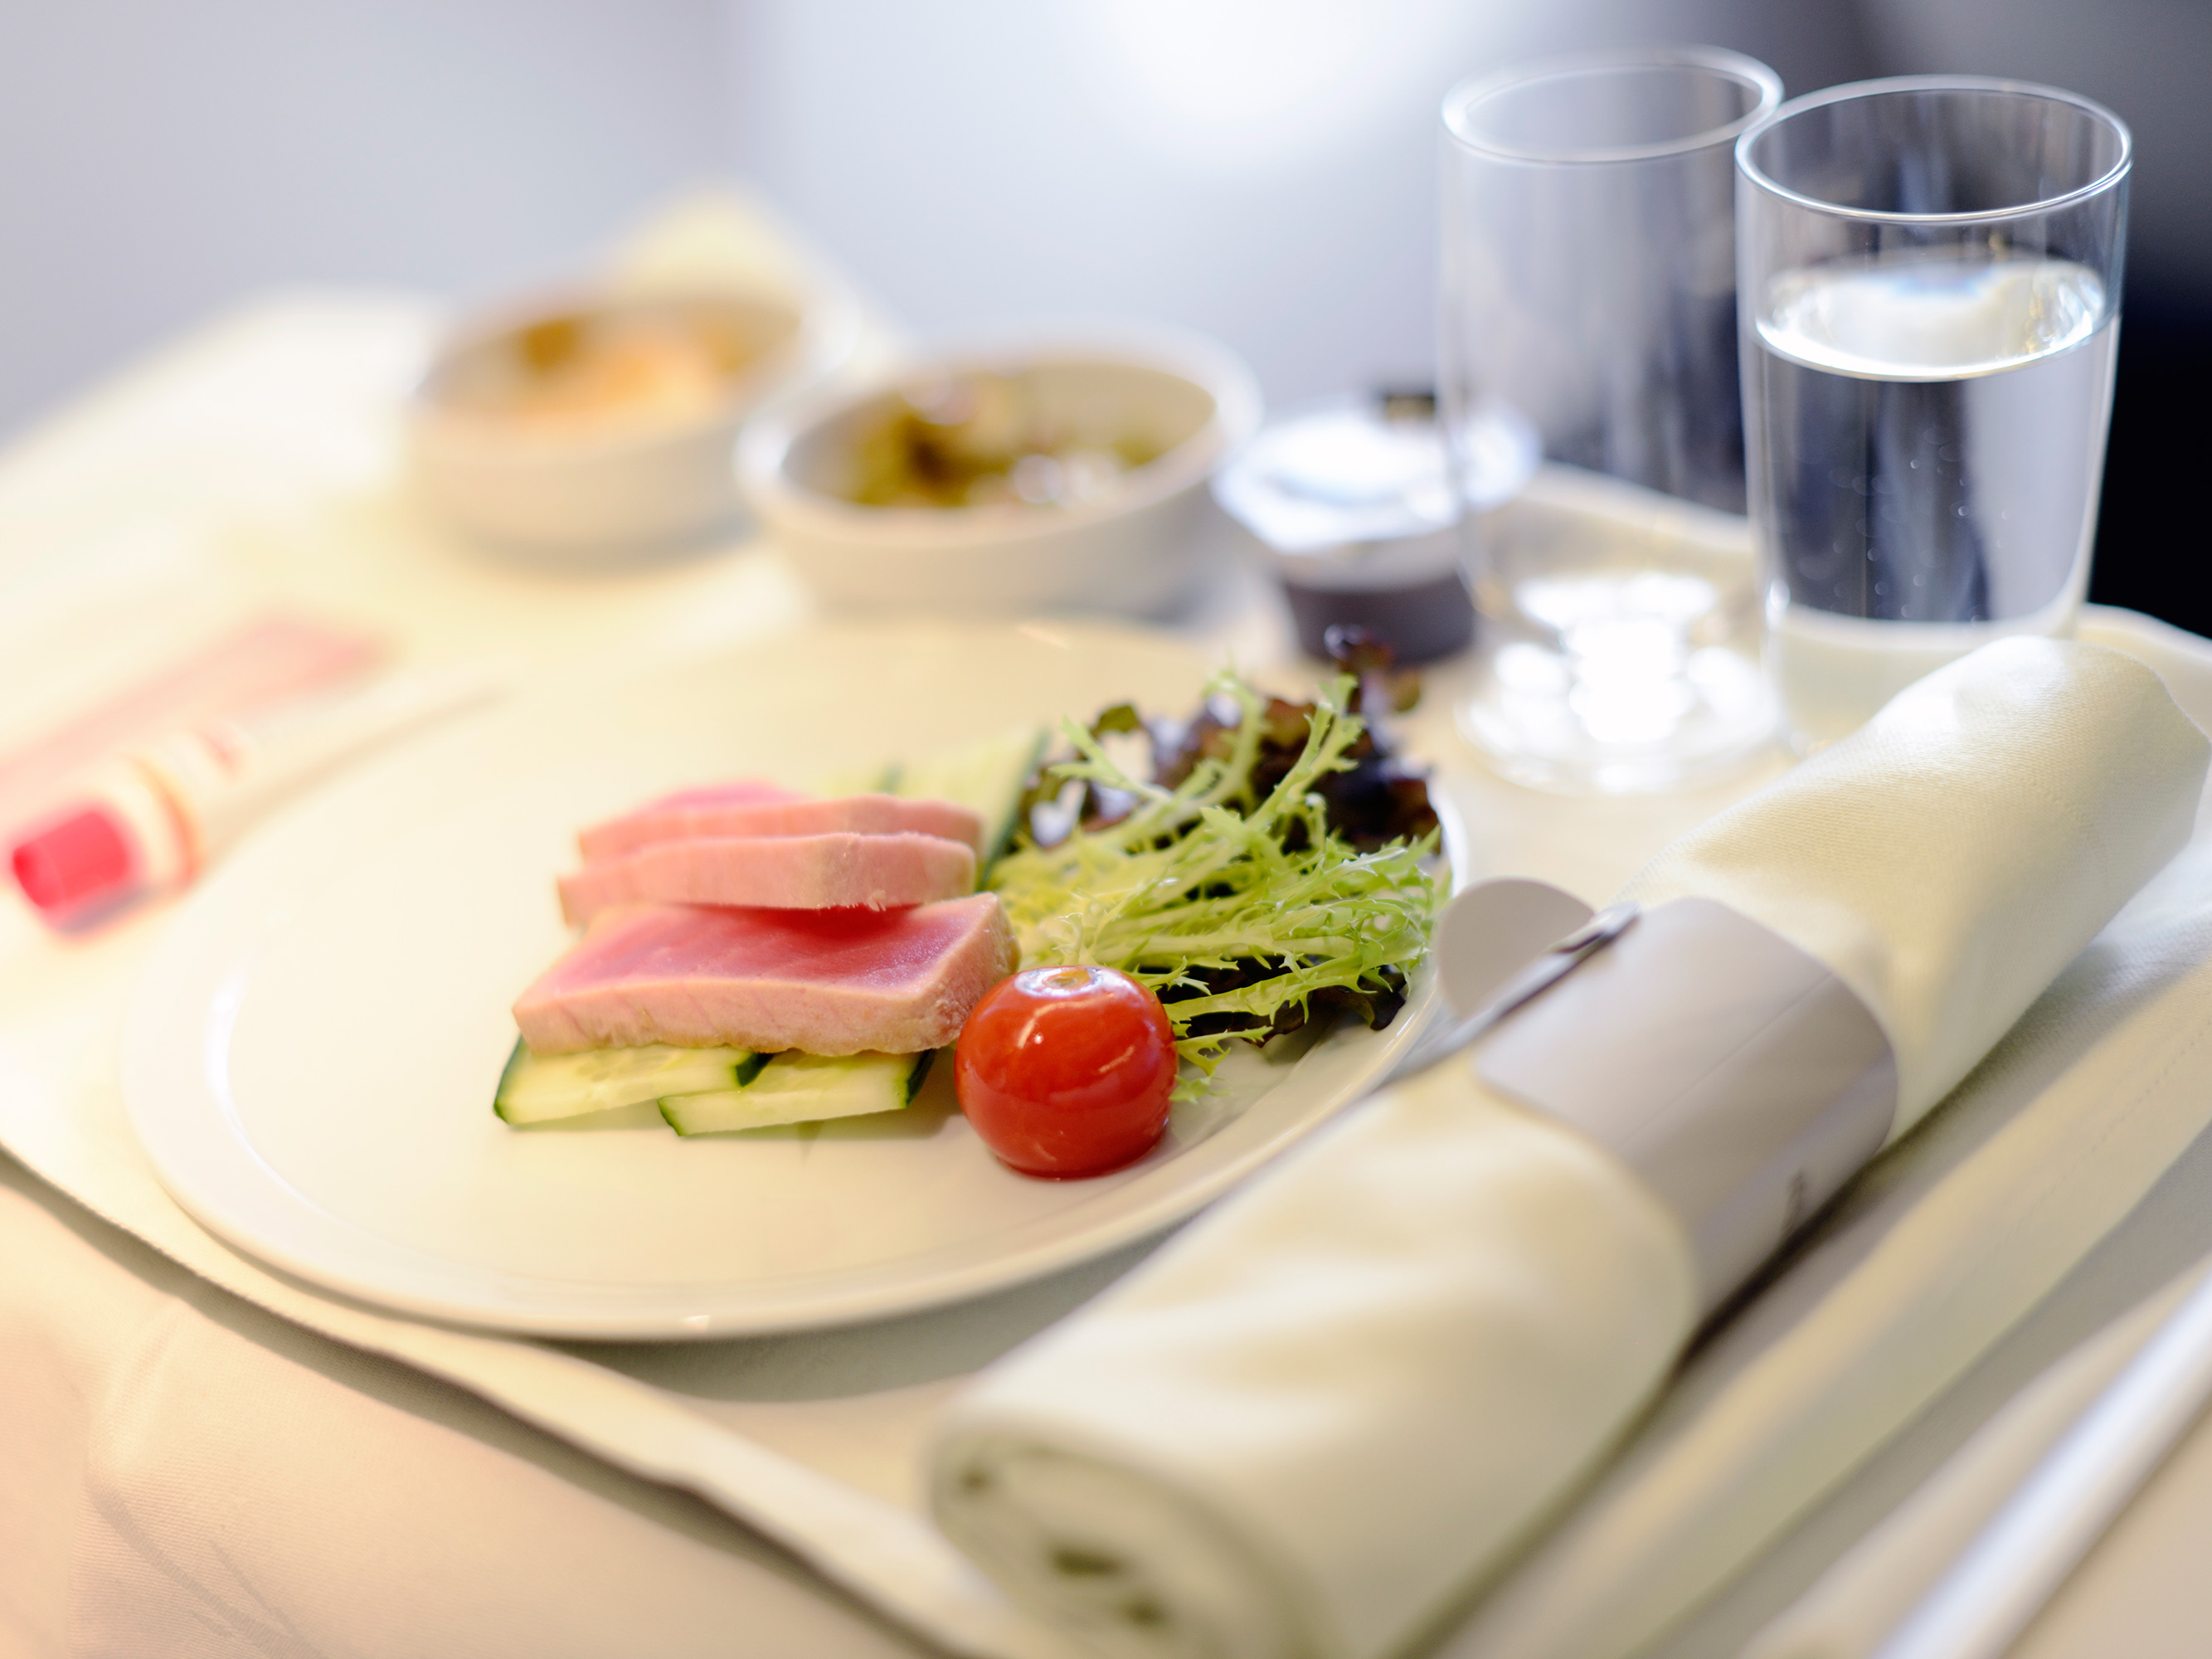 How to Choose the Healthiest Airline Food When Traveling